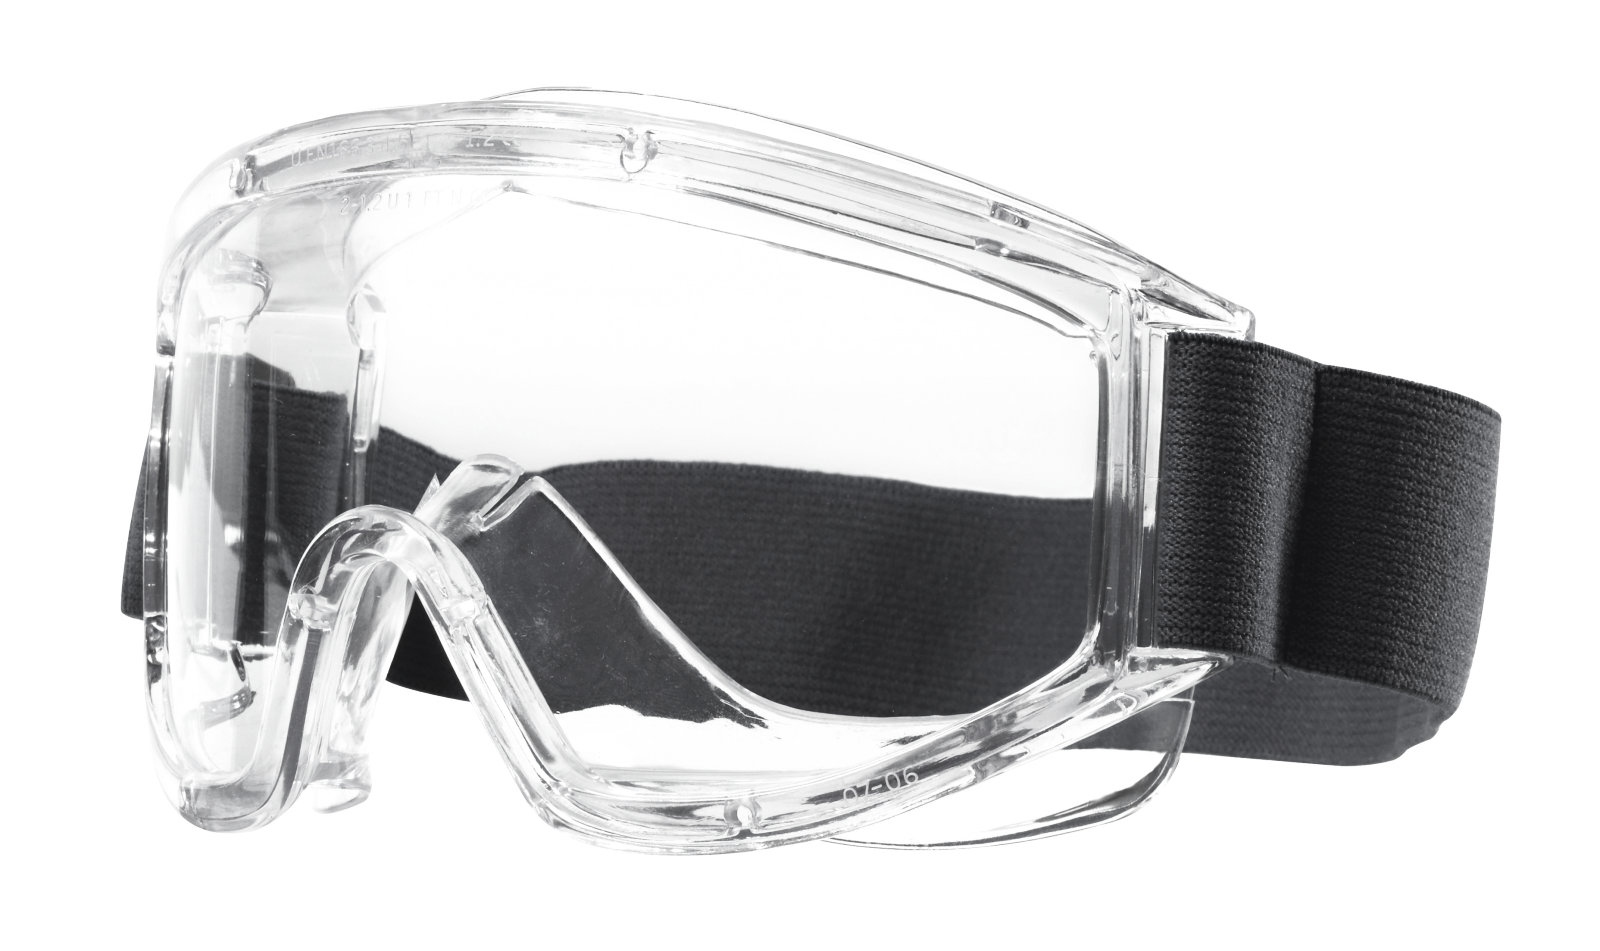 pics/Feldtmann 2016/Kopfschutz/tector/tector-4152-acetat-full-vision-safety-glasses-with-adjustable-head-band-clear.jpg